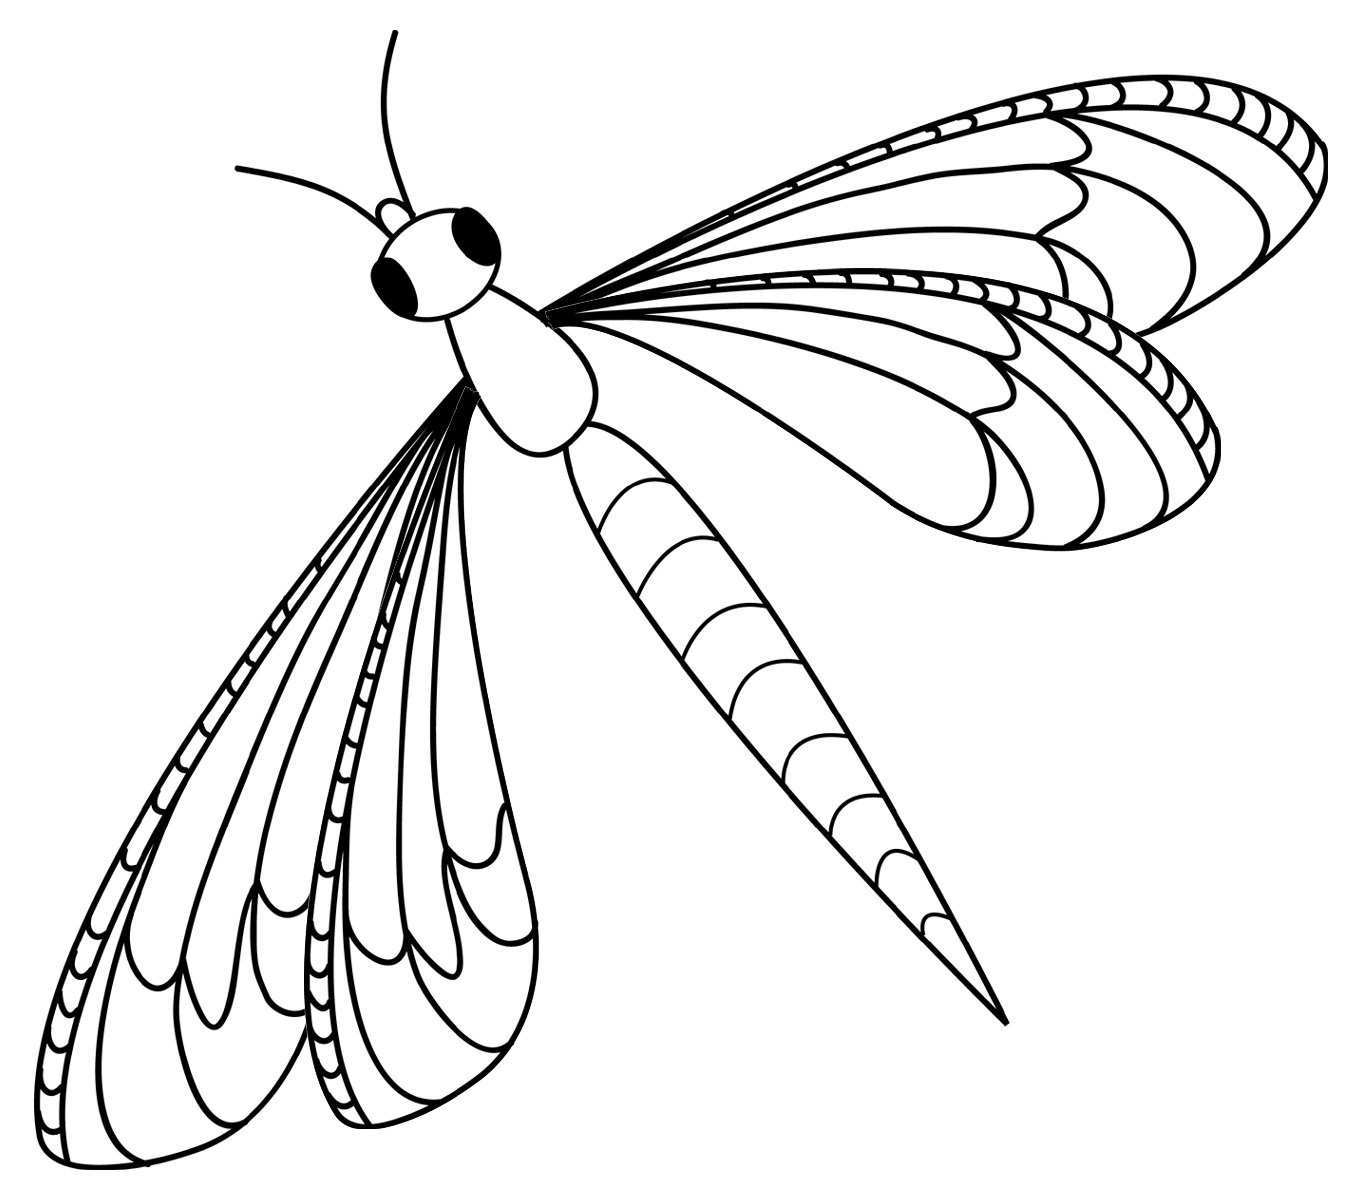 Dragonfly Insect Clipart - Clipart Kid